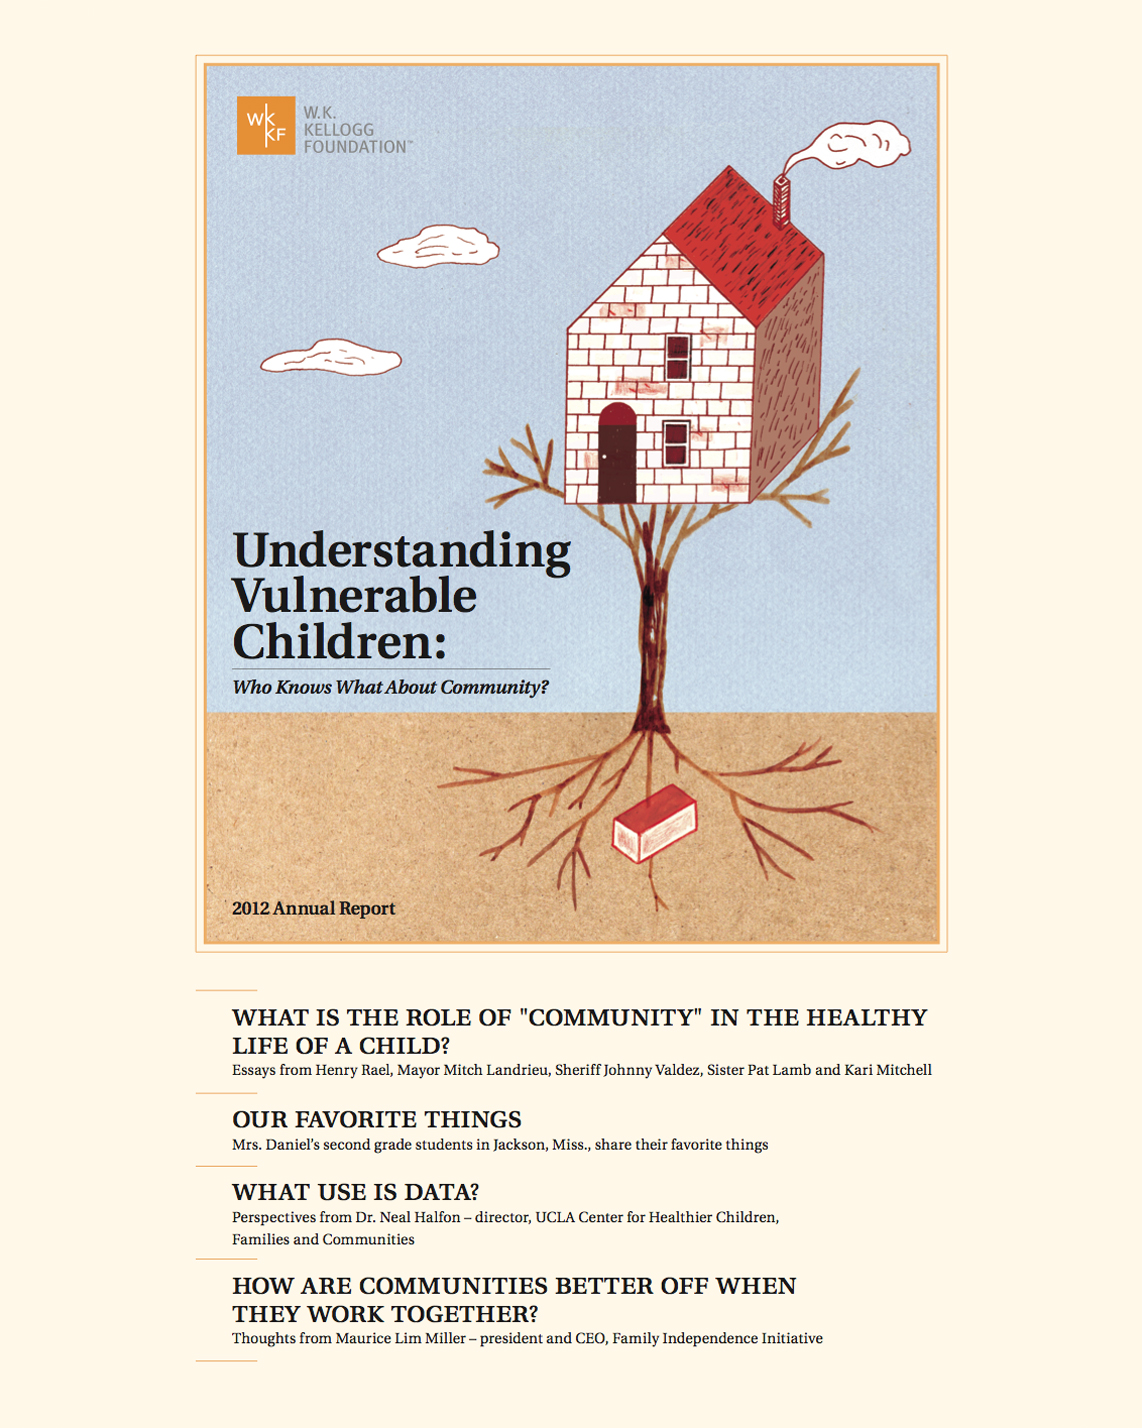 2012 Annual Report - Understanding Vulnerable Children: Who Knows What About Community? - W.K. Kellogg Foundation